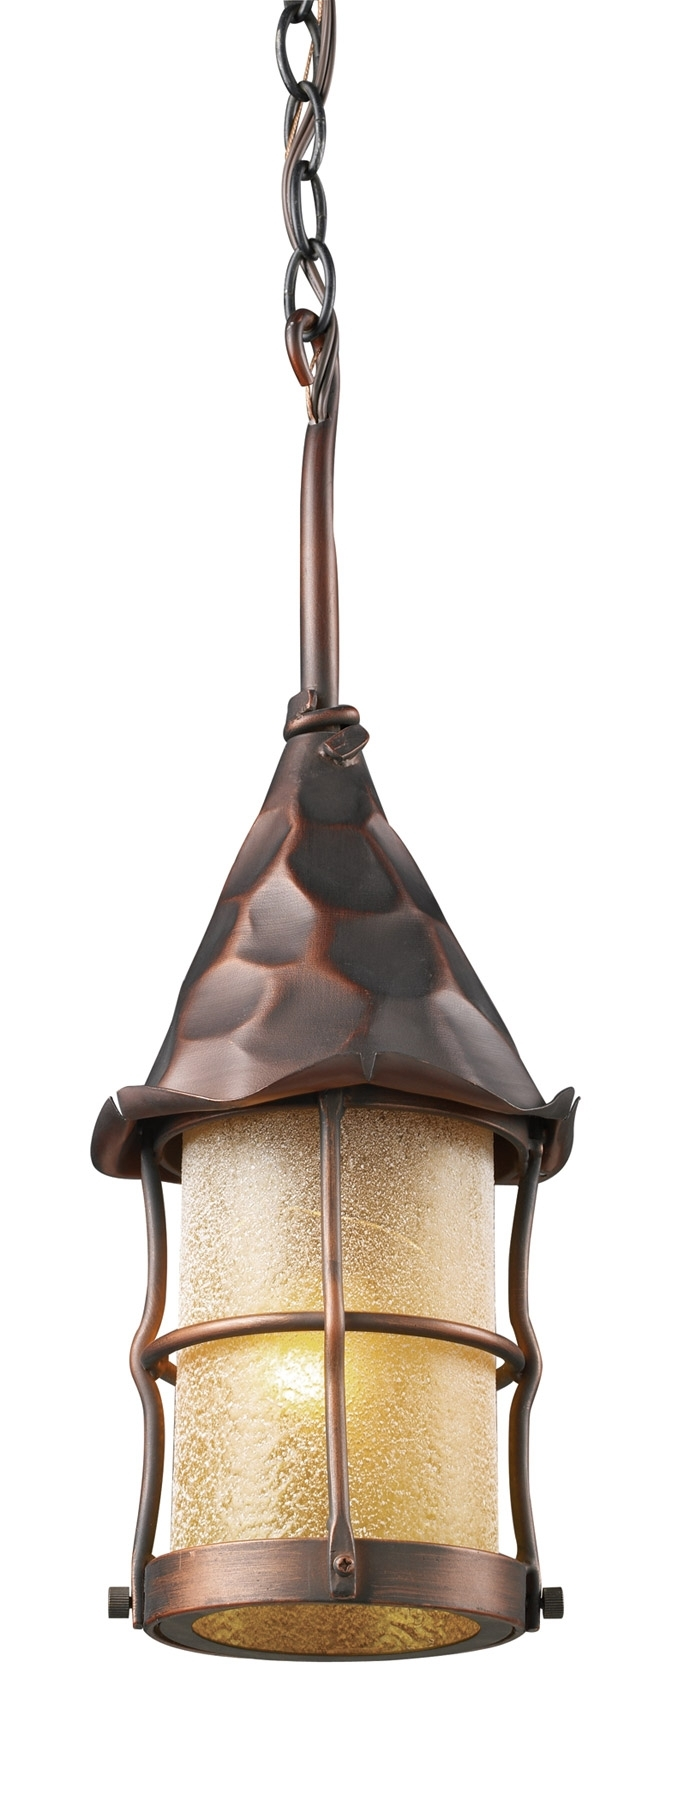 Elk Lighting 388-Ac Rustica Outdoor Hanging Lantern inside Outdoor Rustic Lanterns (Image 8 of 20)